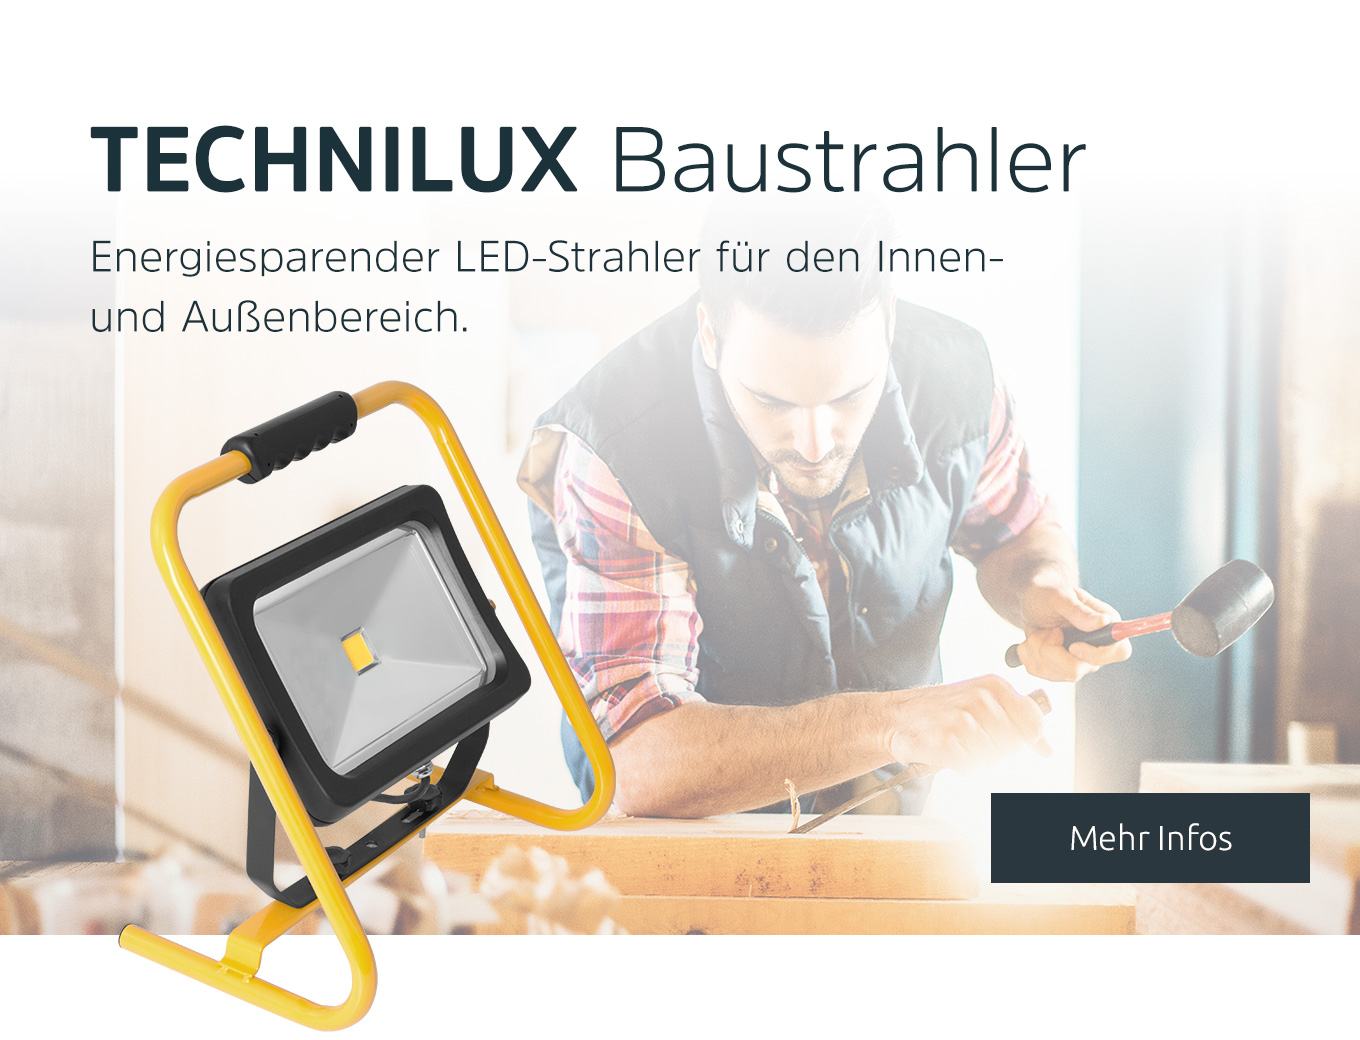 TECHNILUX LED Baustrahler